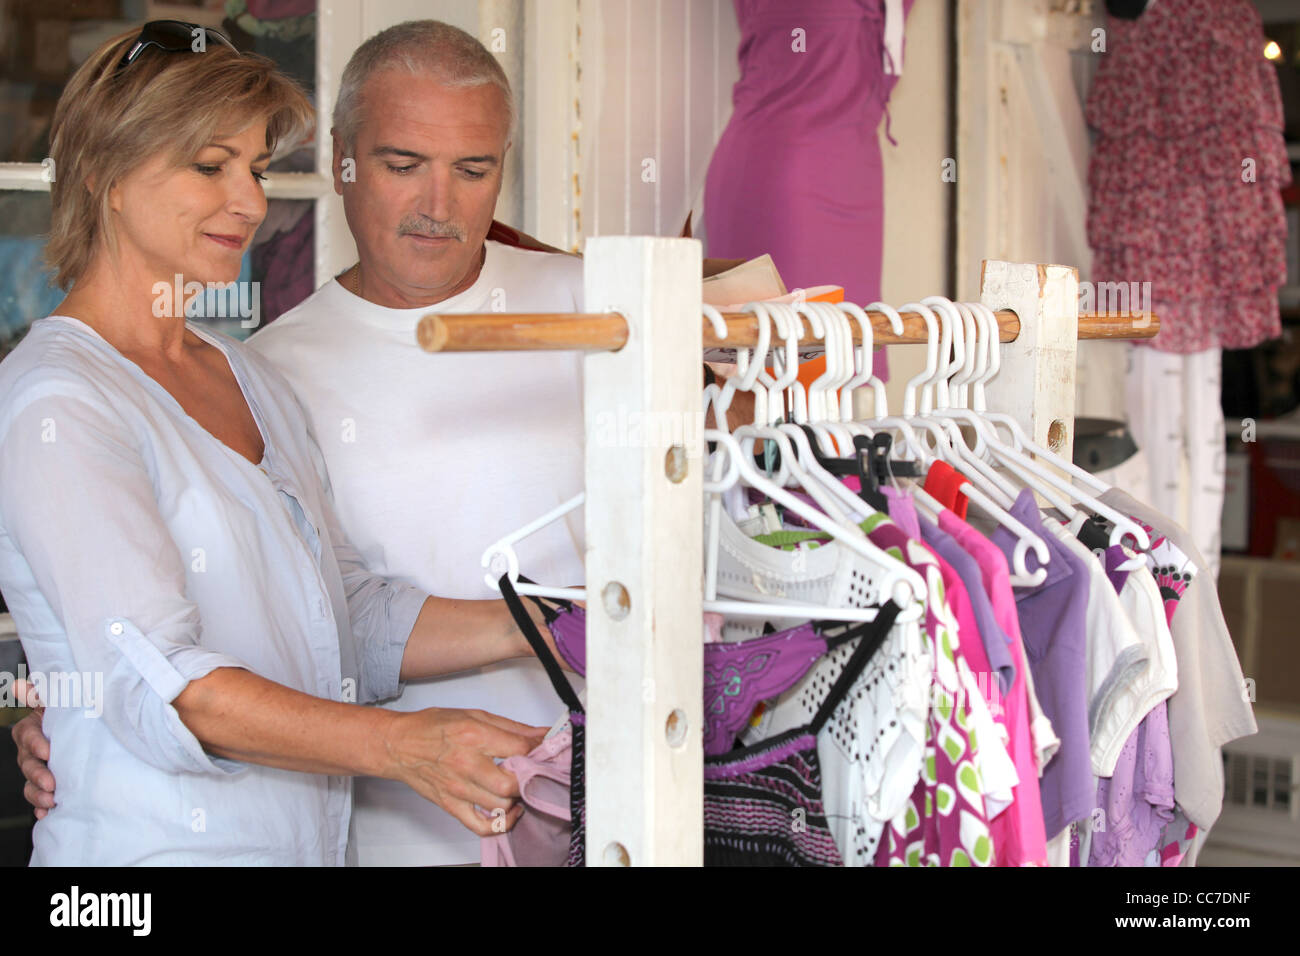 Couple shopping for women's clothes - Stock Image